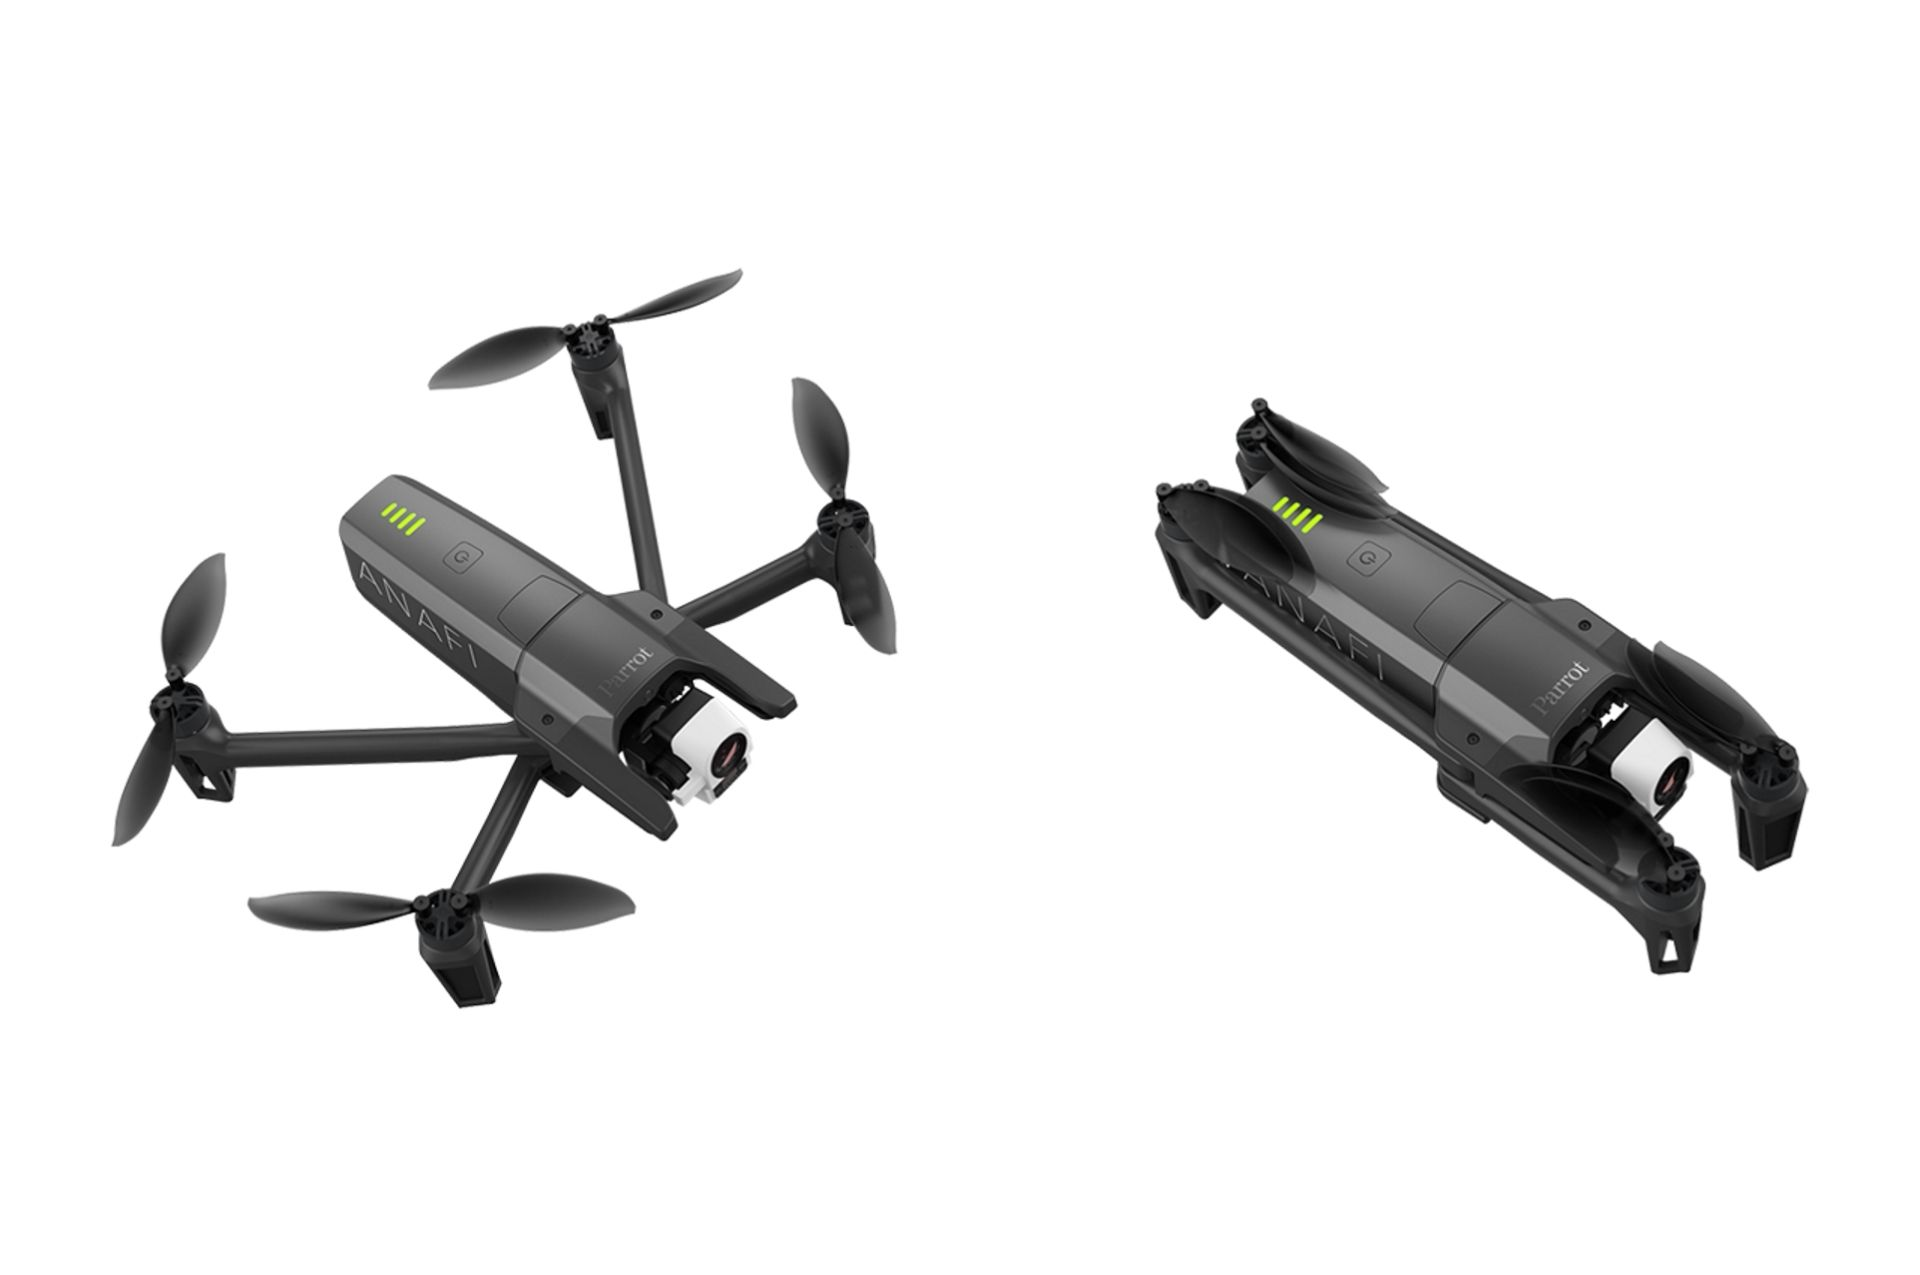 Parrot launches drone equipped with thermal imaging camera